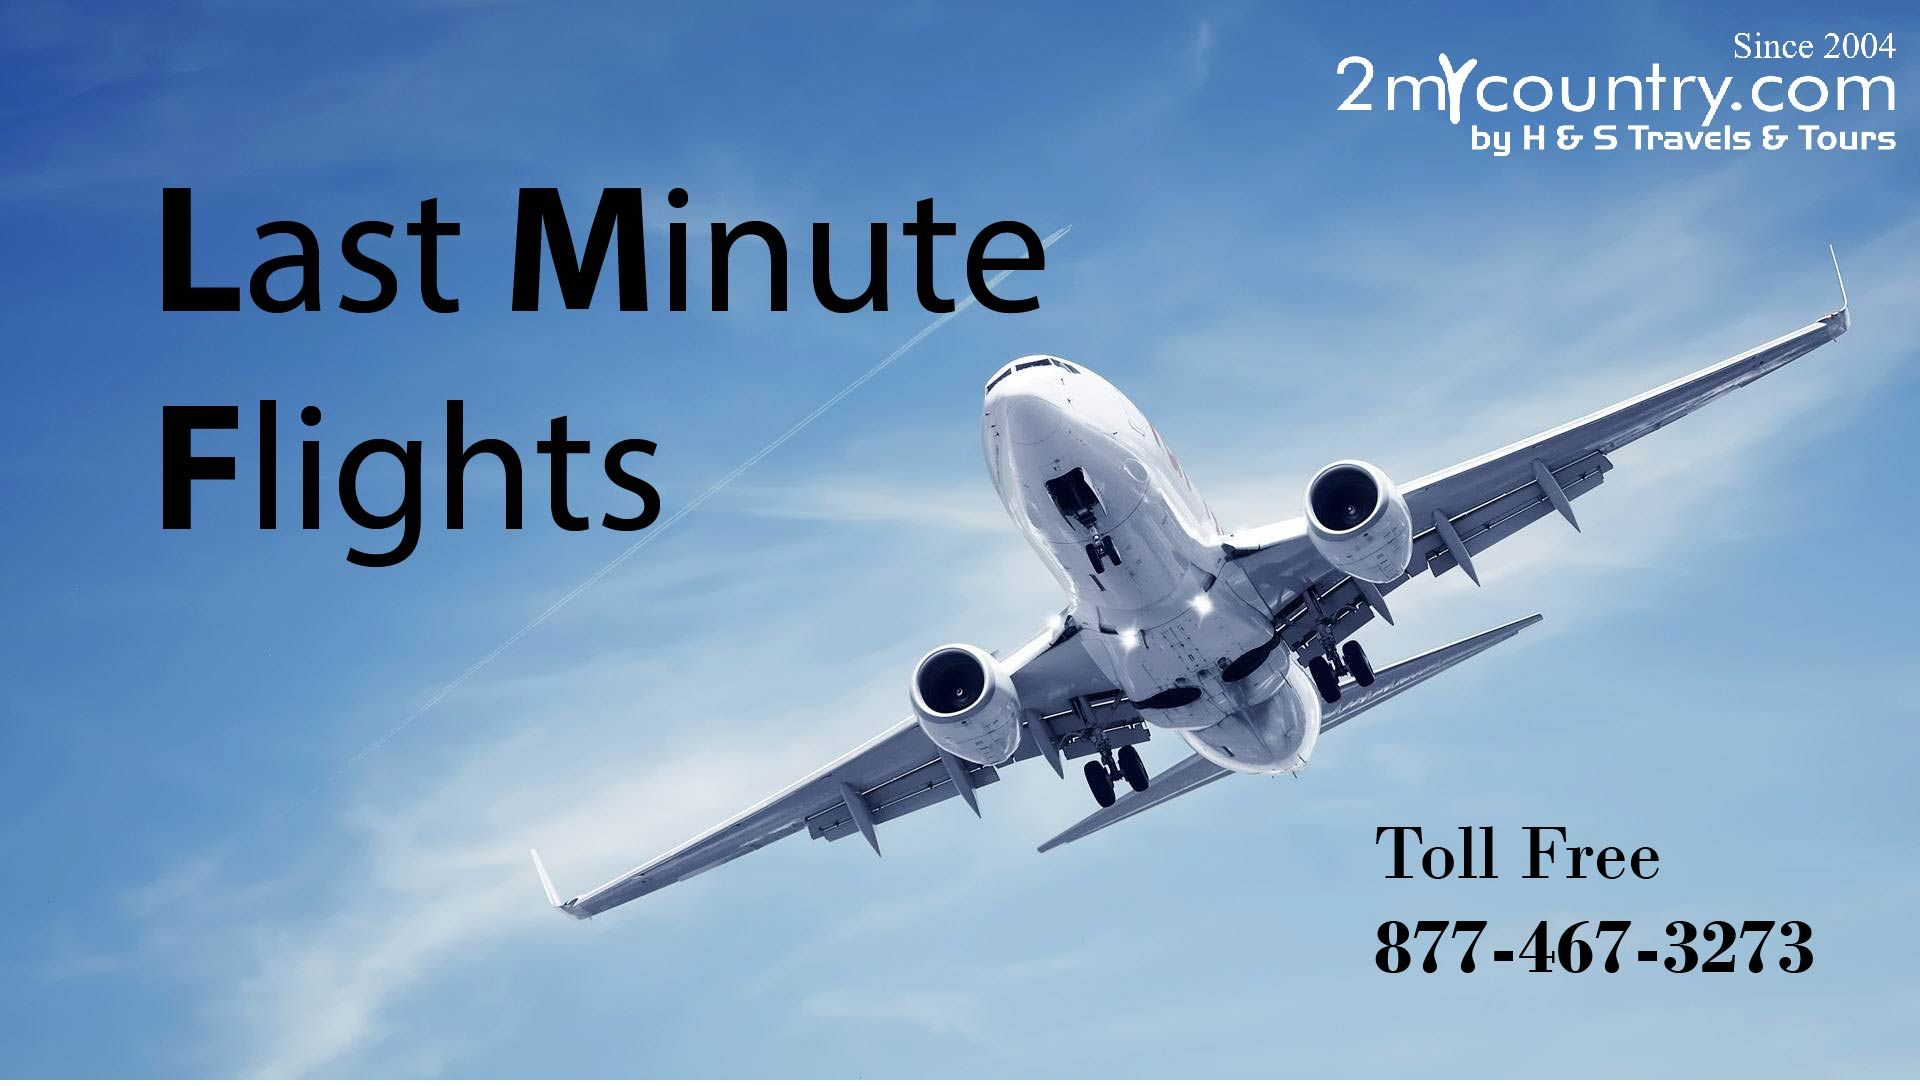 Find a Cheap Flight Through our huge selection of airline tickets. Compare and book cheap flights tickets and save with 2mycountry.com.   #cheaptickets #jfktomaa #airfaredeals #2mycountry #flighttickets #lastminute #flightdeals #cheaptickets #airlinetickets #traveldeals